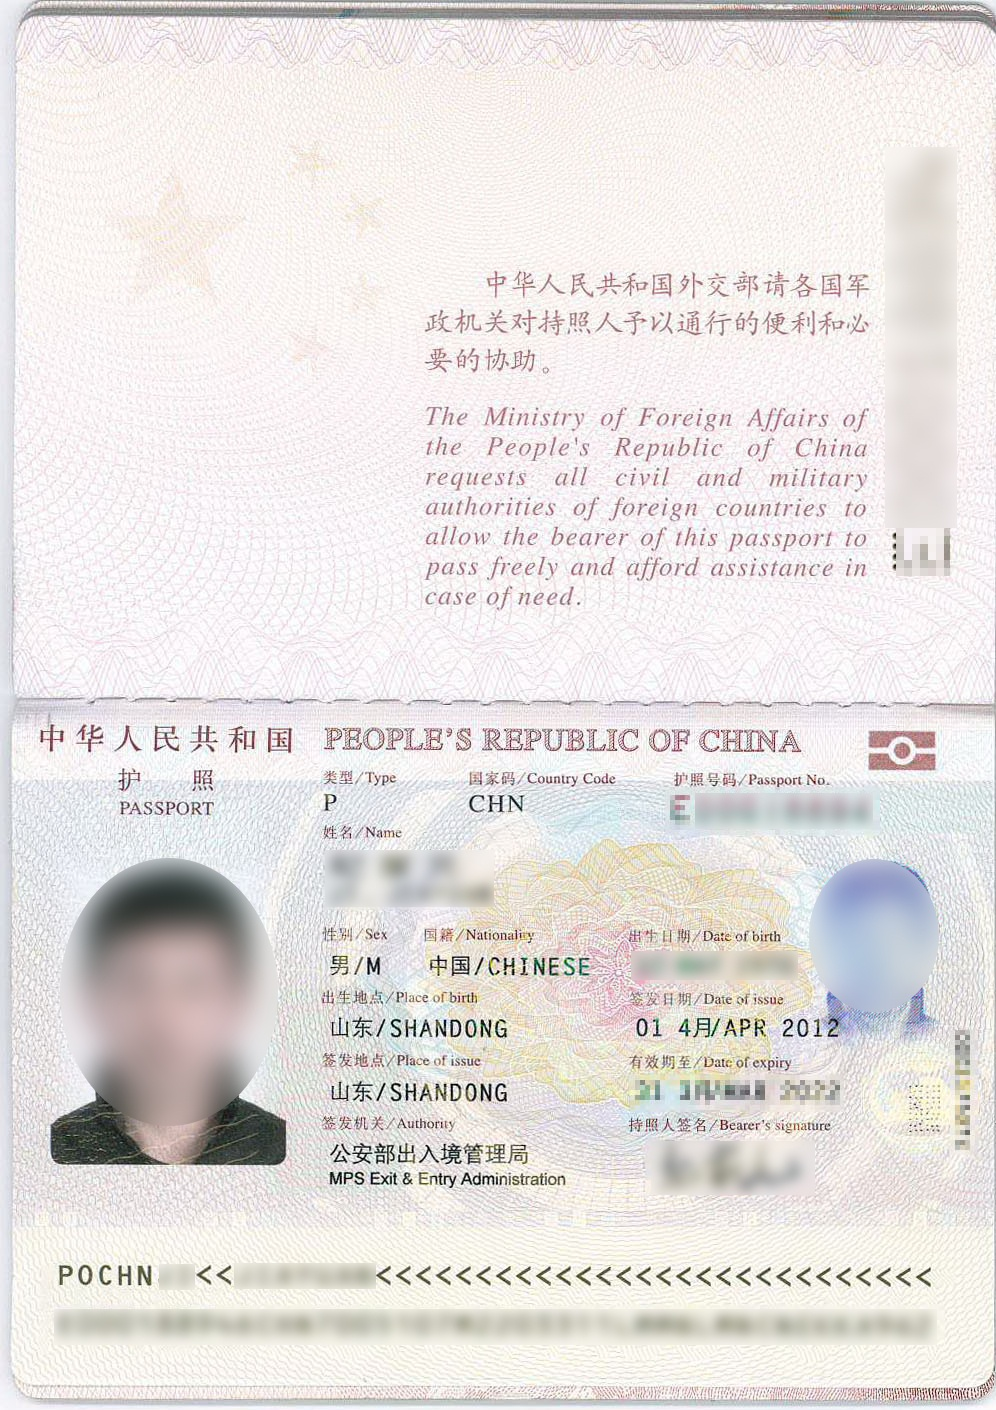 How hard is it to fake the bar code in a passport? - Quora